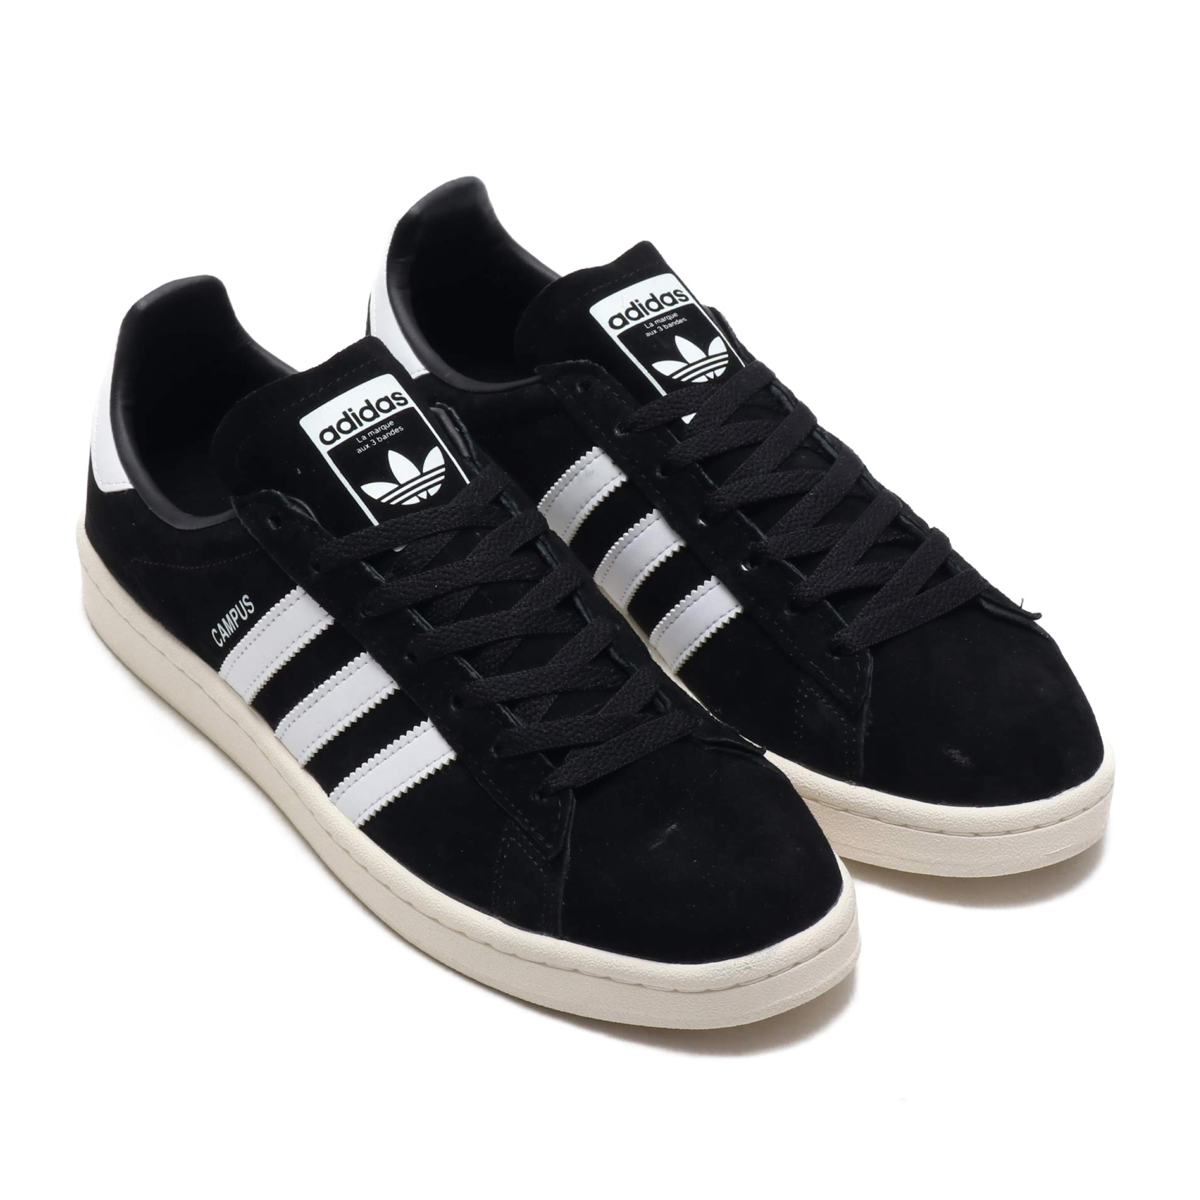 Kinetics | Rakuten Global Market: adidas Originals CAMPUS (Core Black/Running White/Chalk White)